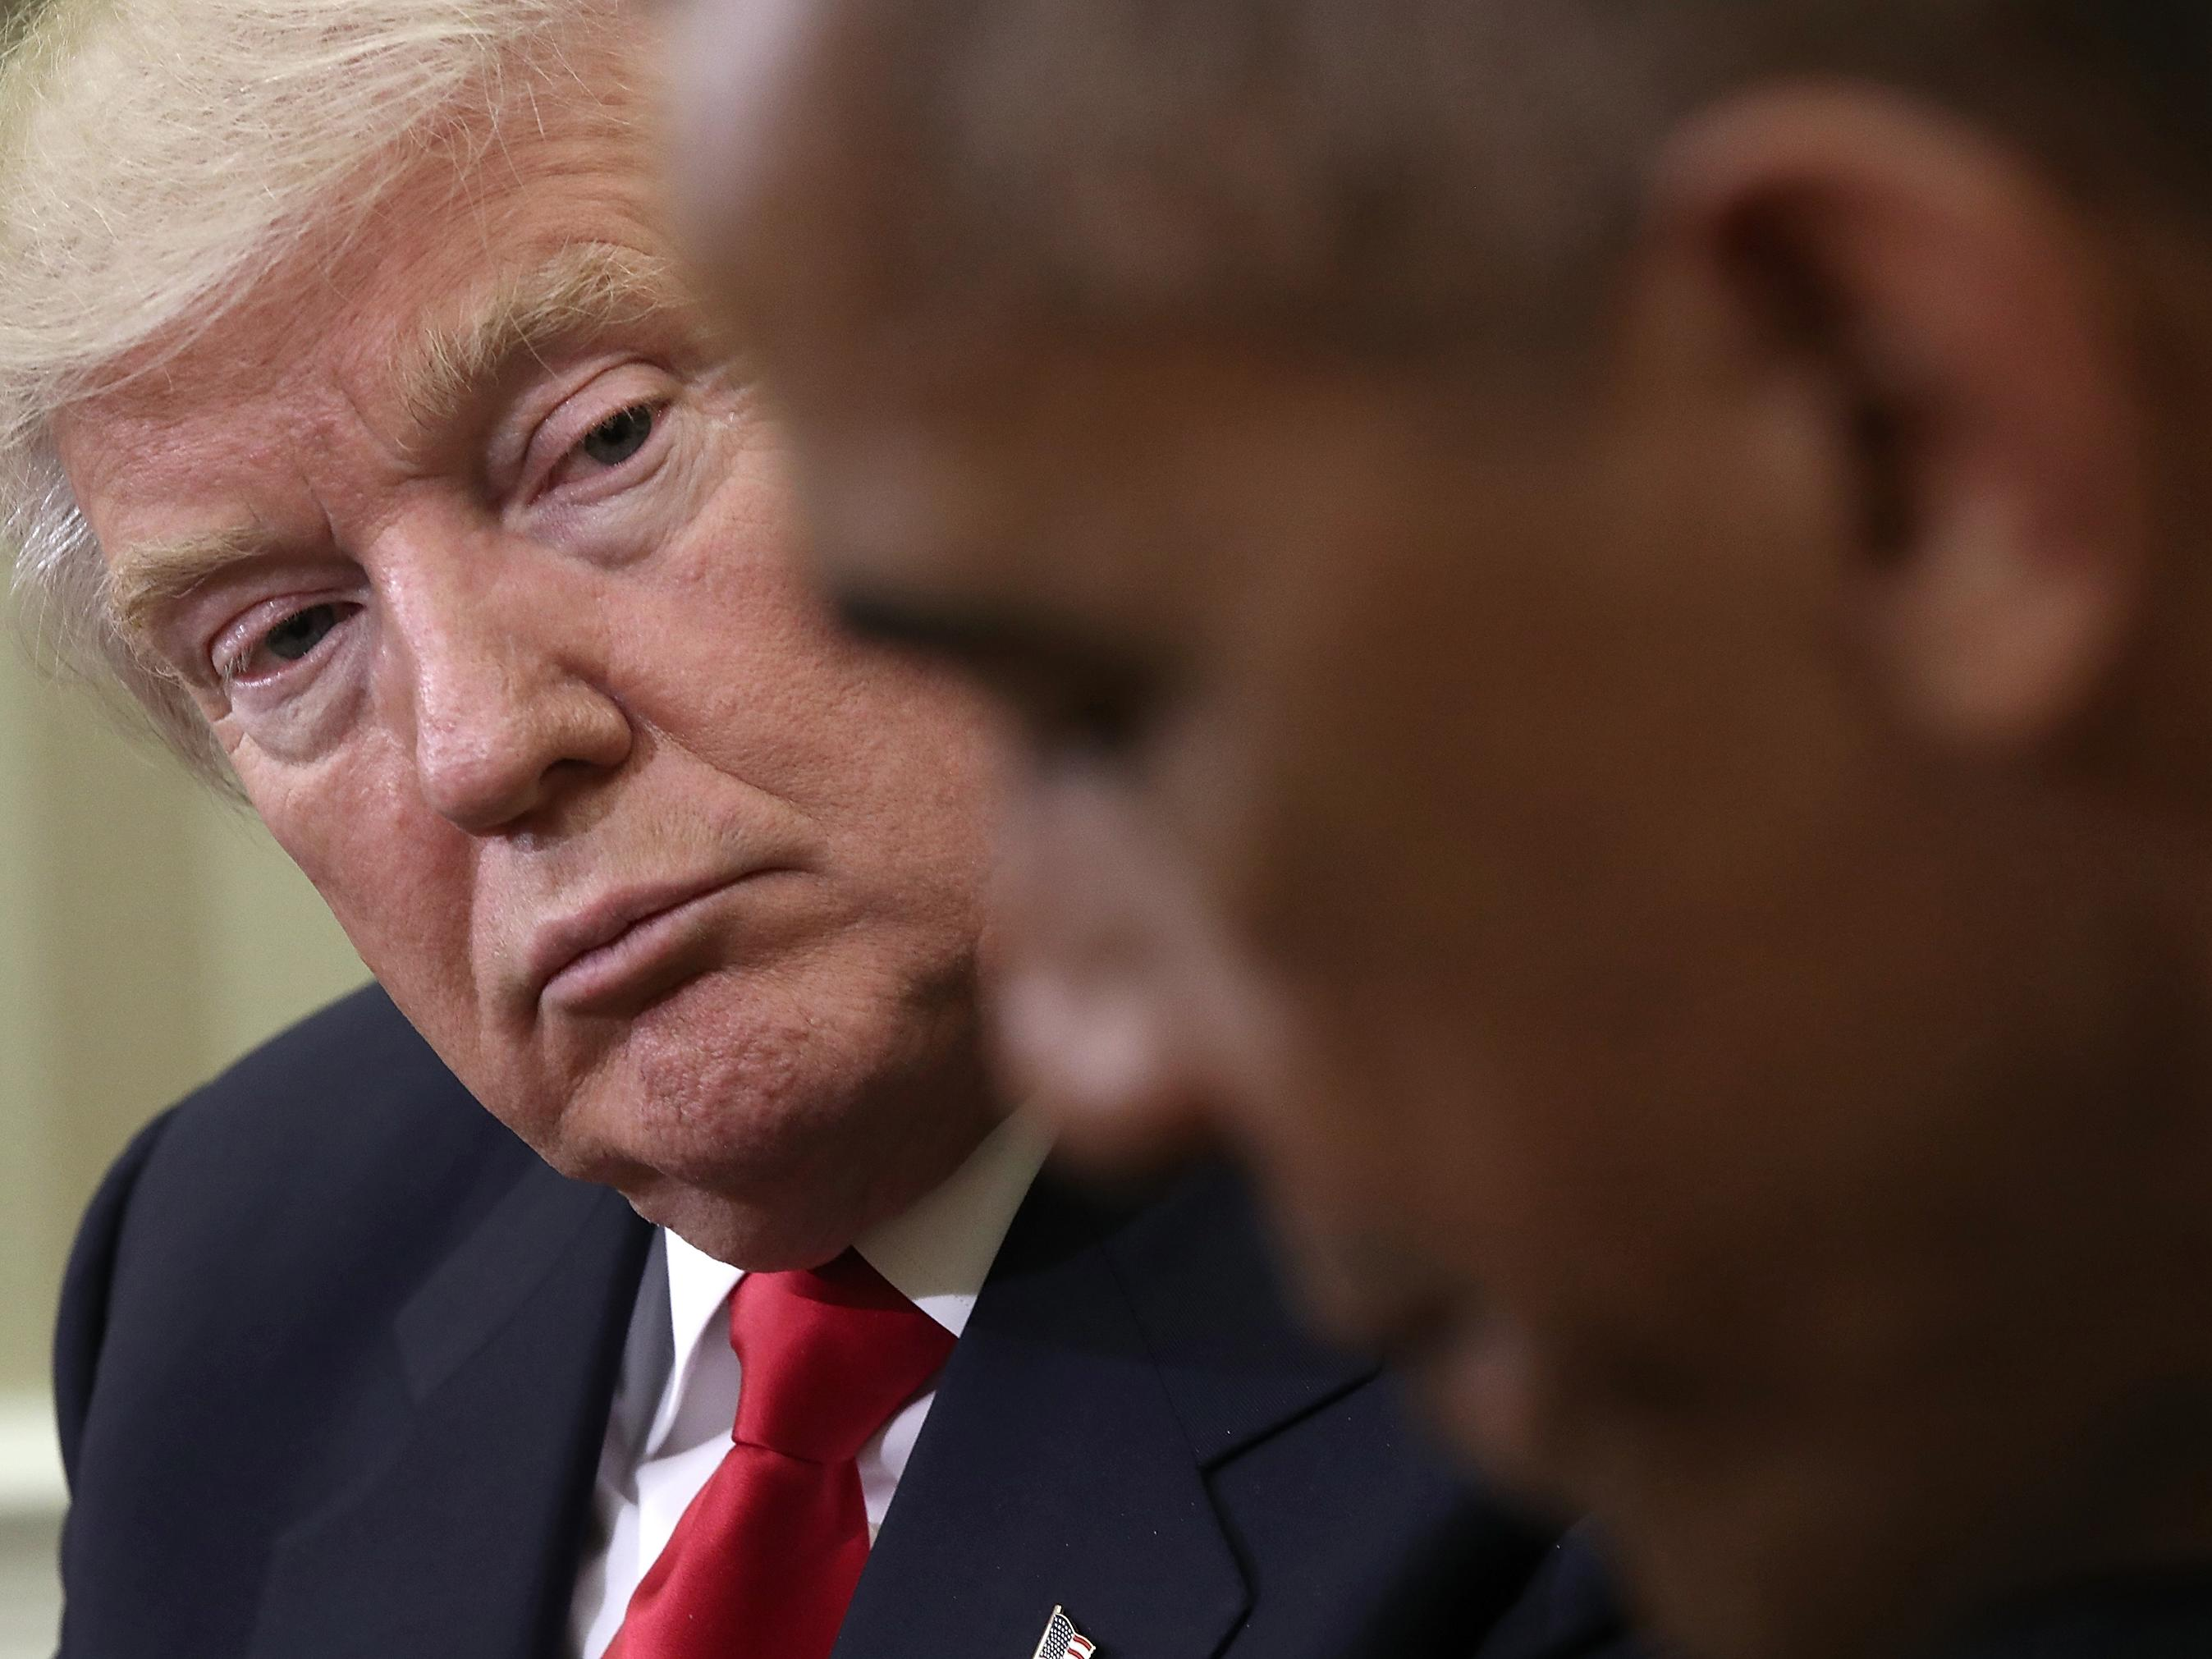 Donald Trump could erase Obama's legacy almost as soon as he takes office